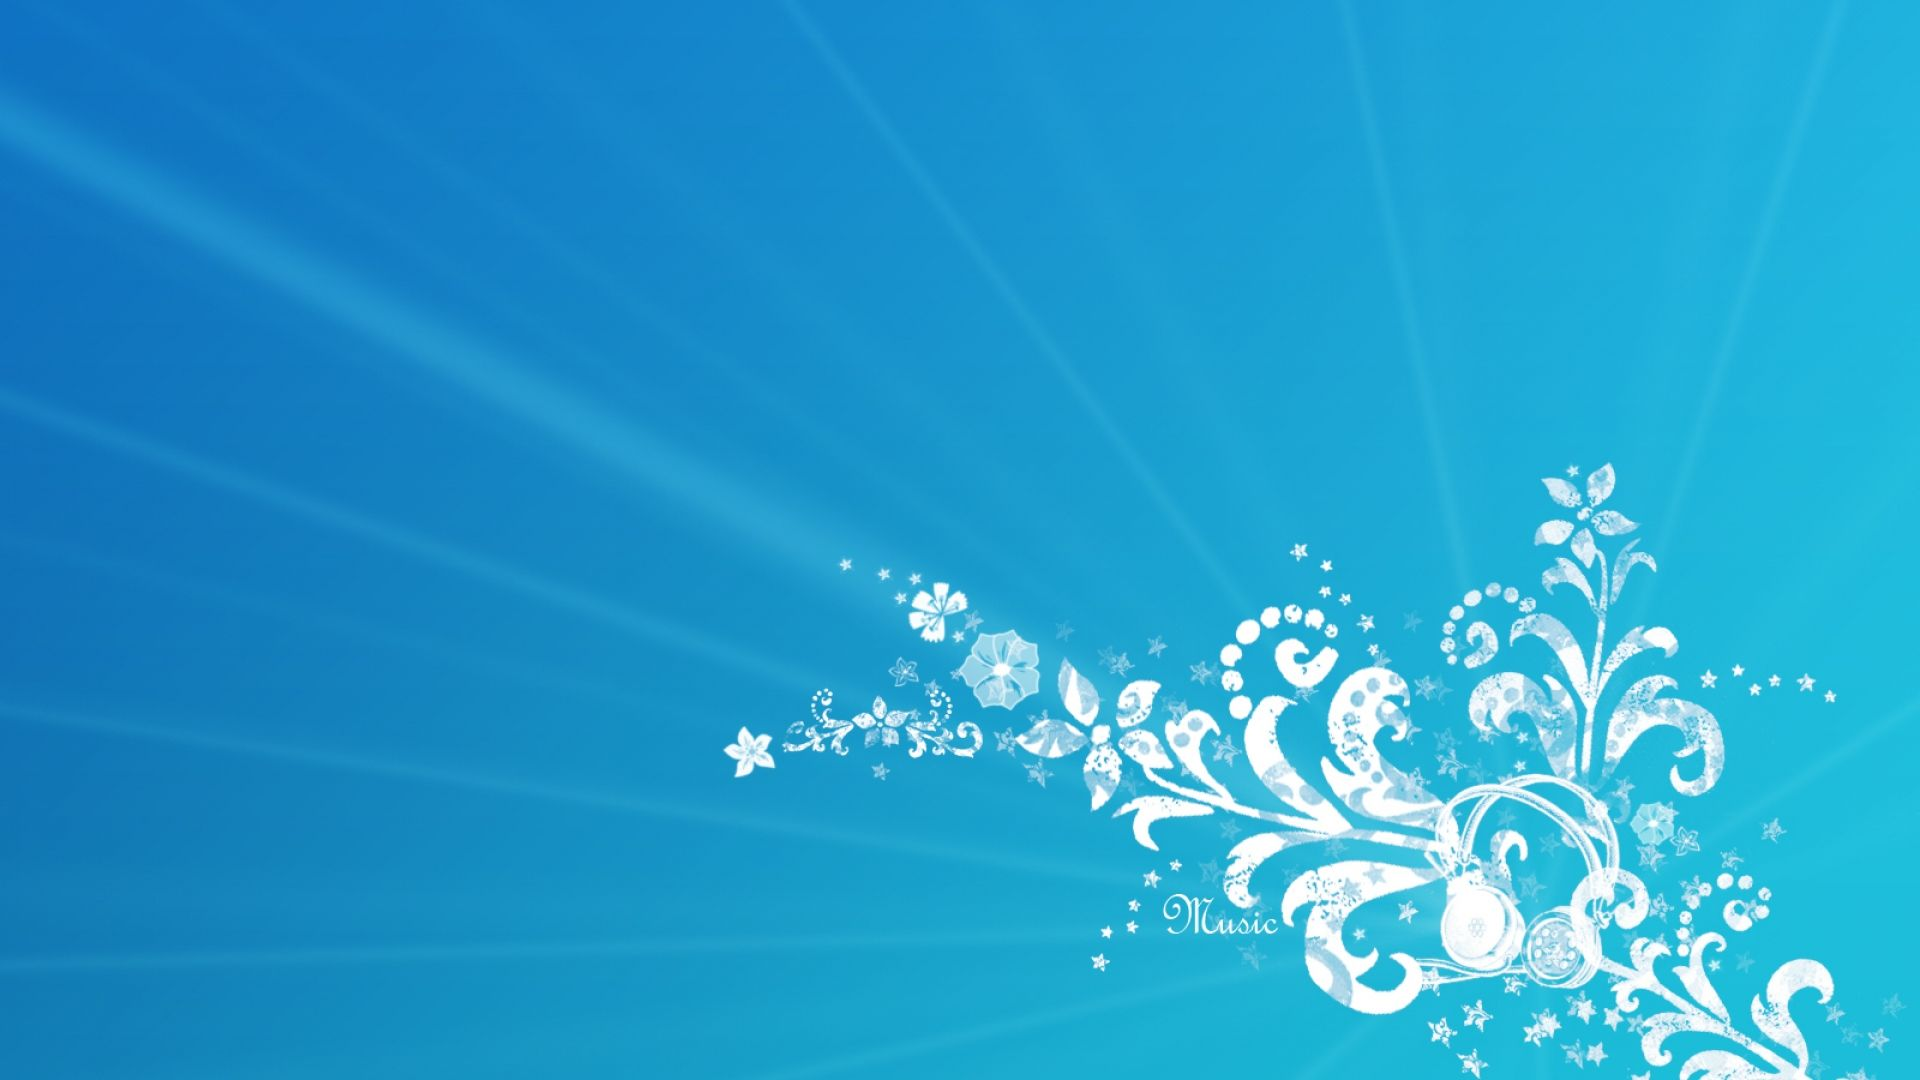 Sky Blue Wallpaper, PC Sky Blue Amazing Wallpapers (Ie-Wallpapers ...